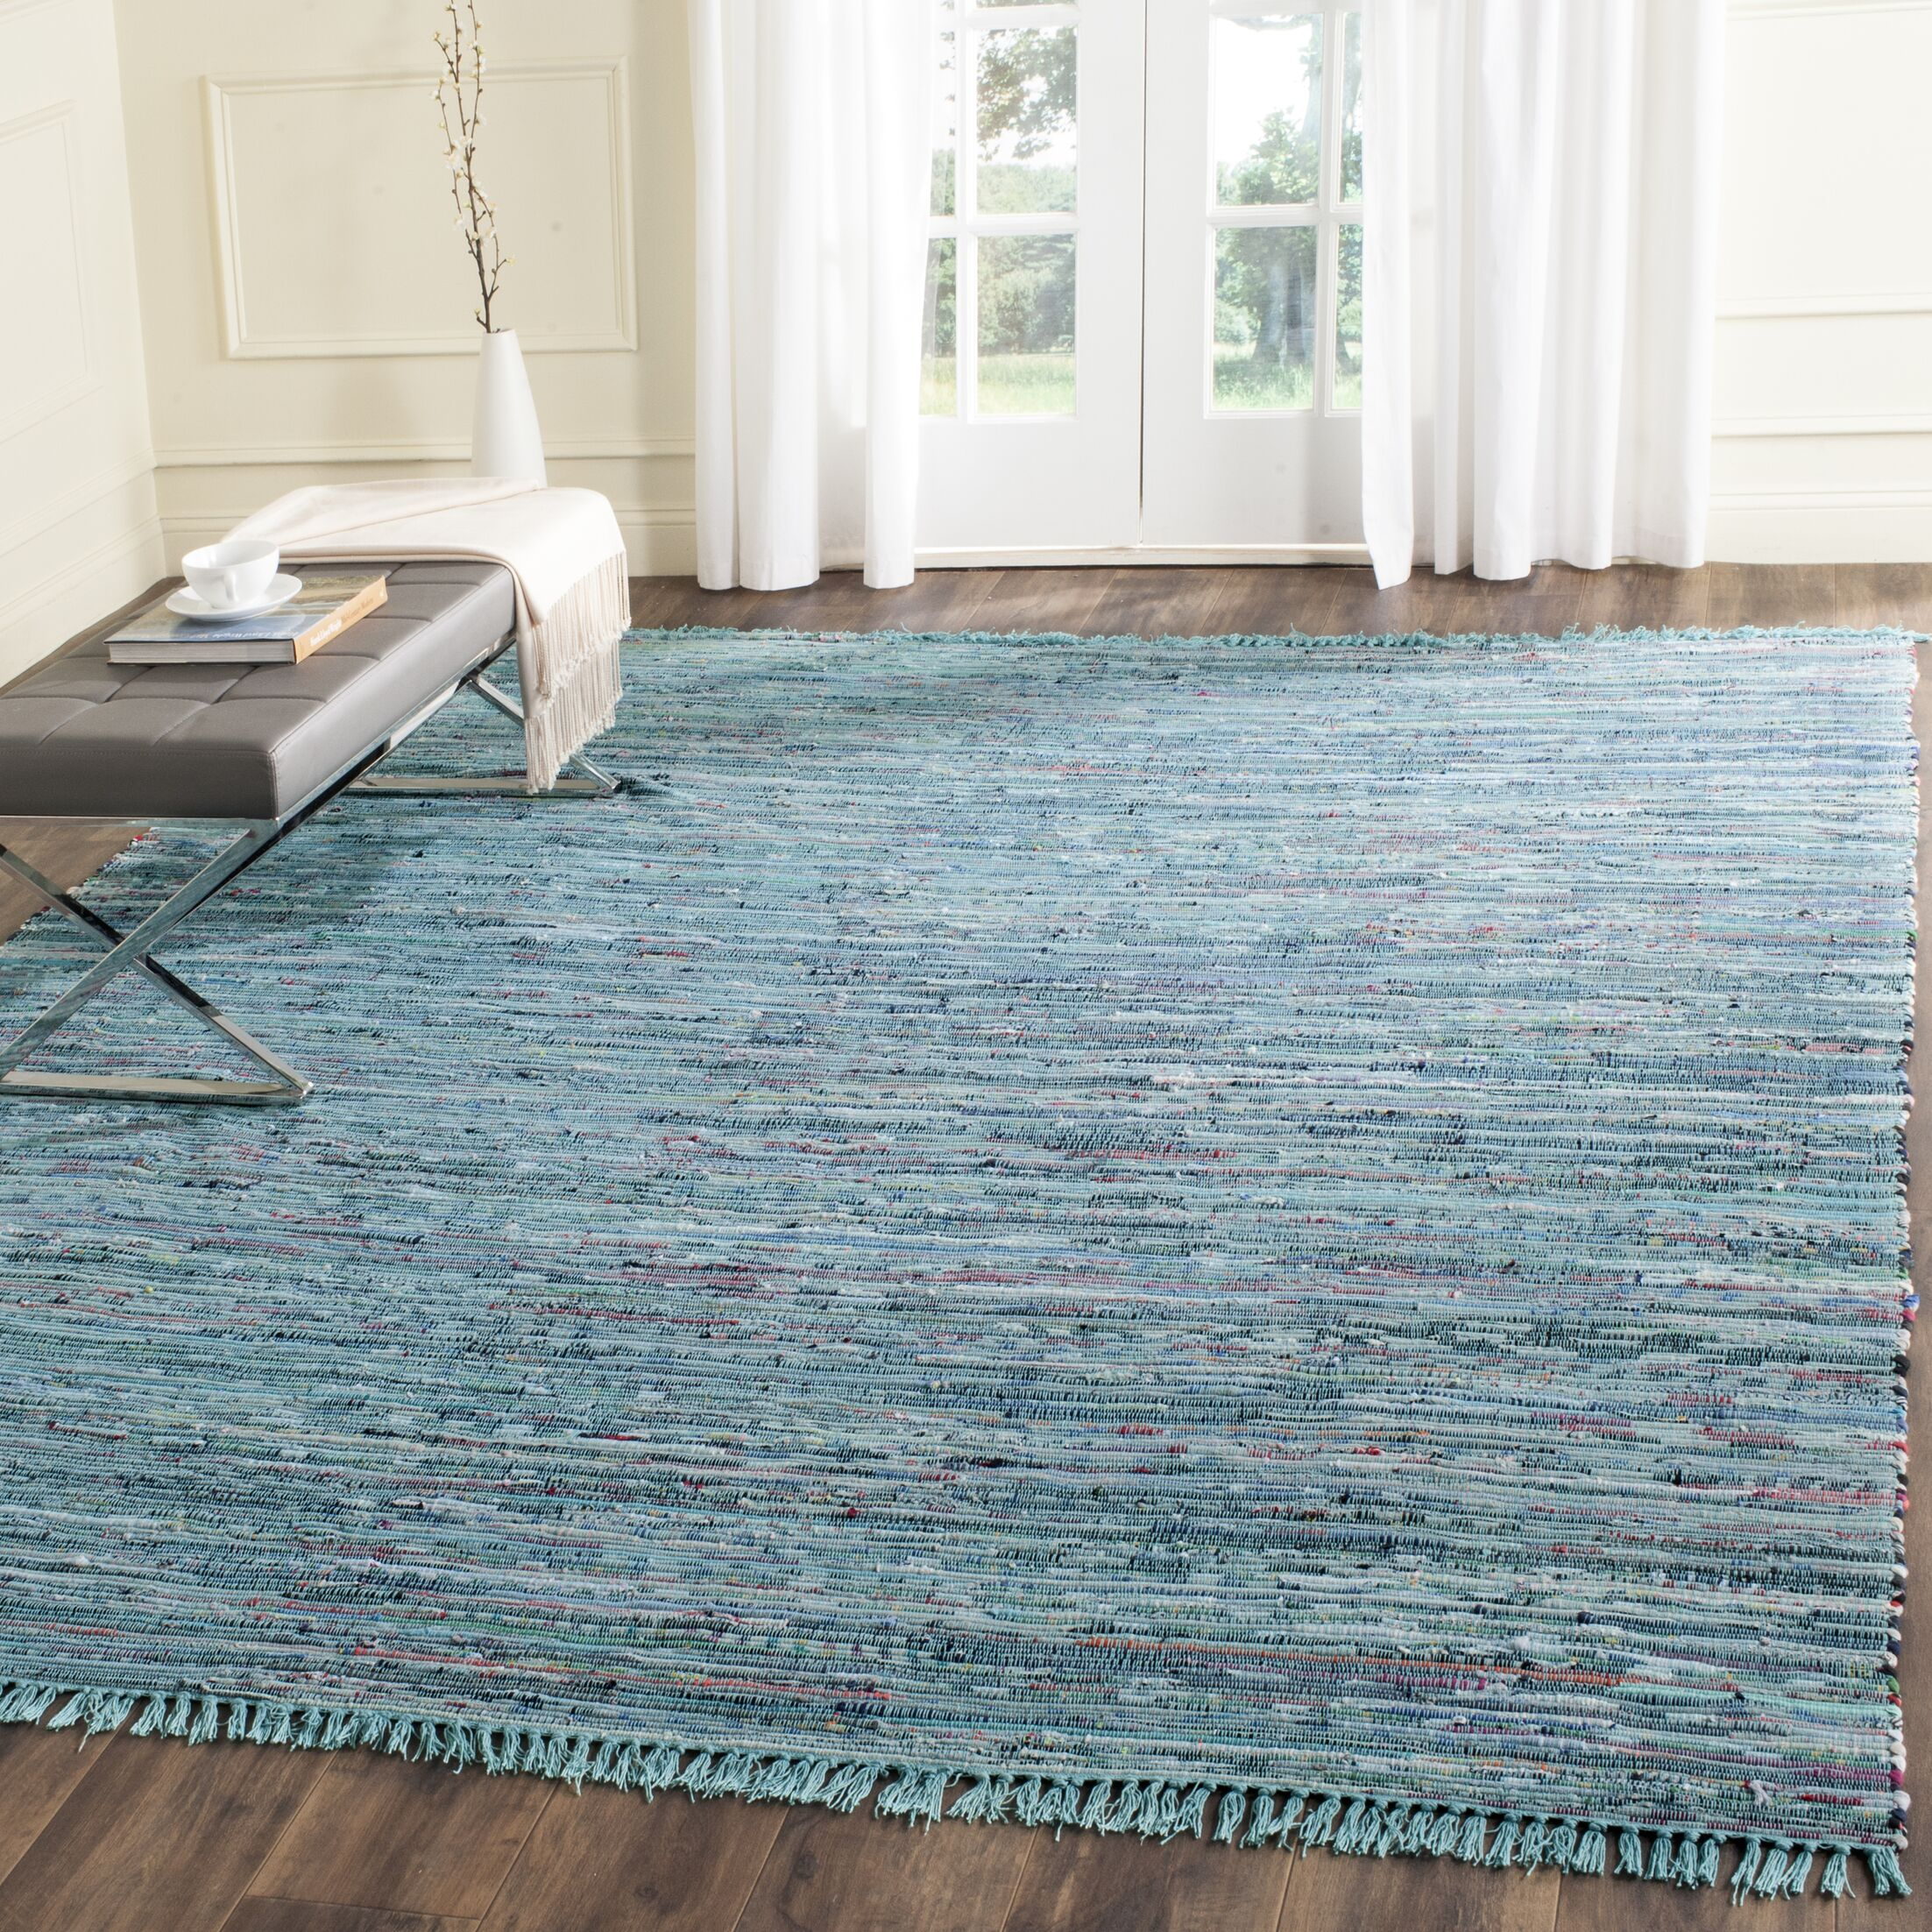 Inkom Hand-Woven Cotton Blue Area Rug Rug Size: Rectangle 8' x 10'